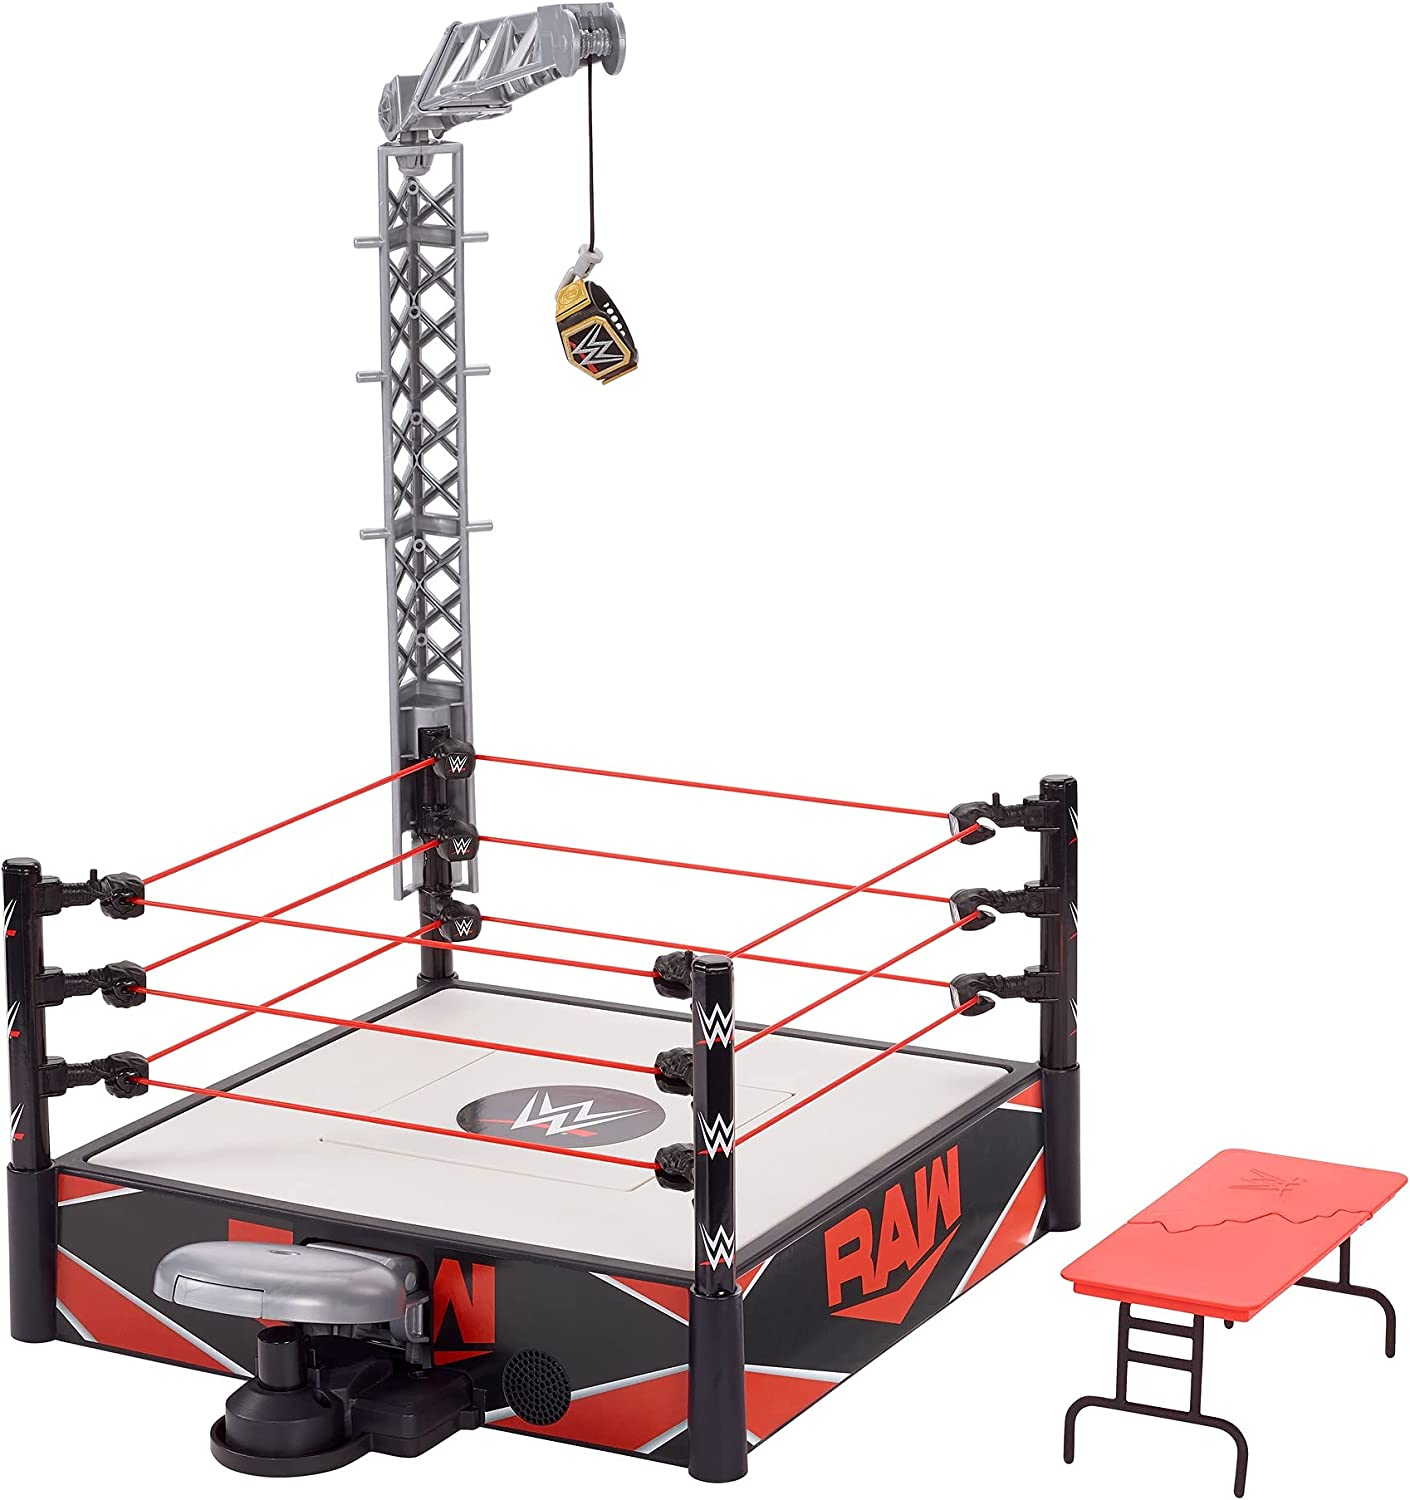 Max 80% OFFicial OFF WWE Wrekkin Kickout Ring Playset 20-in 13-in 33.02-cm x 50.8-